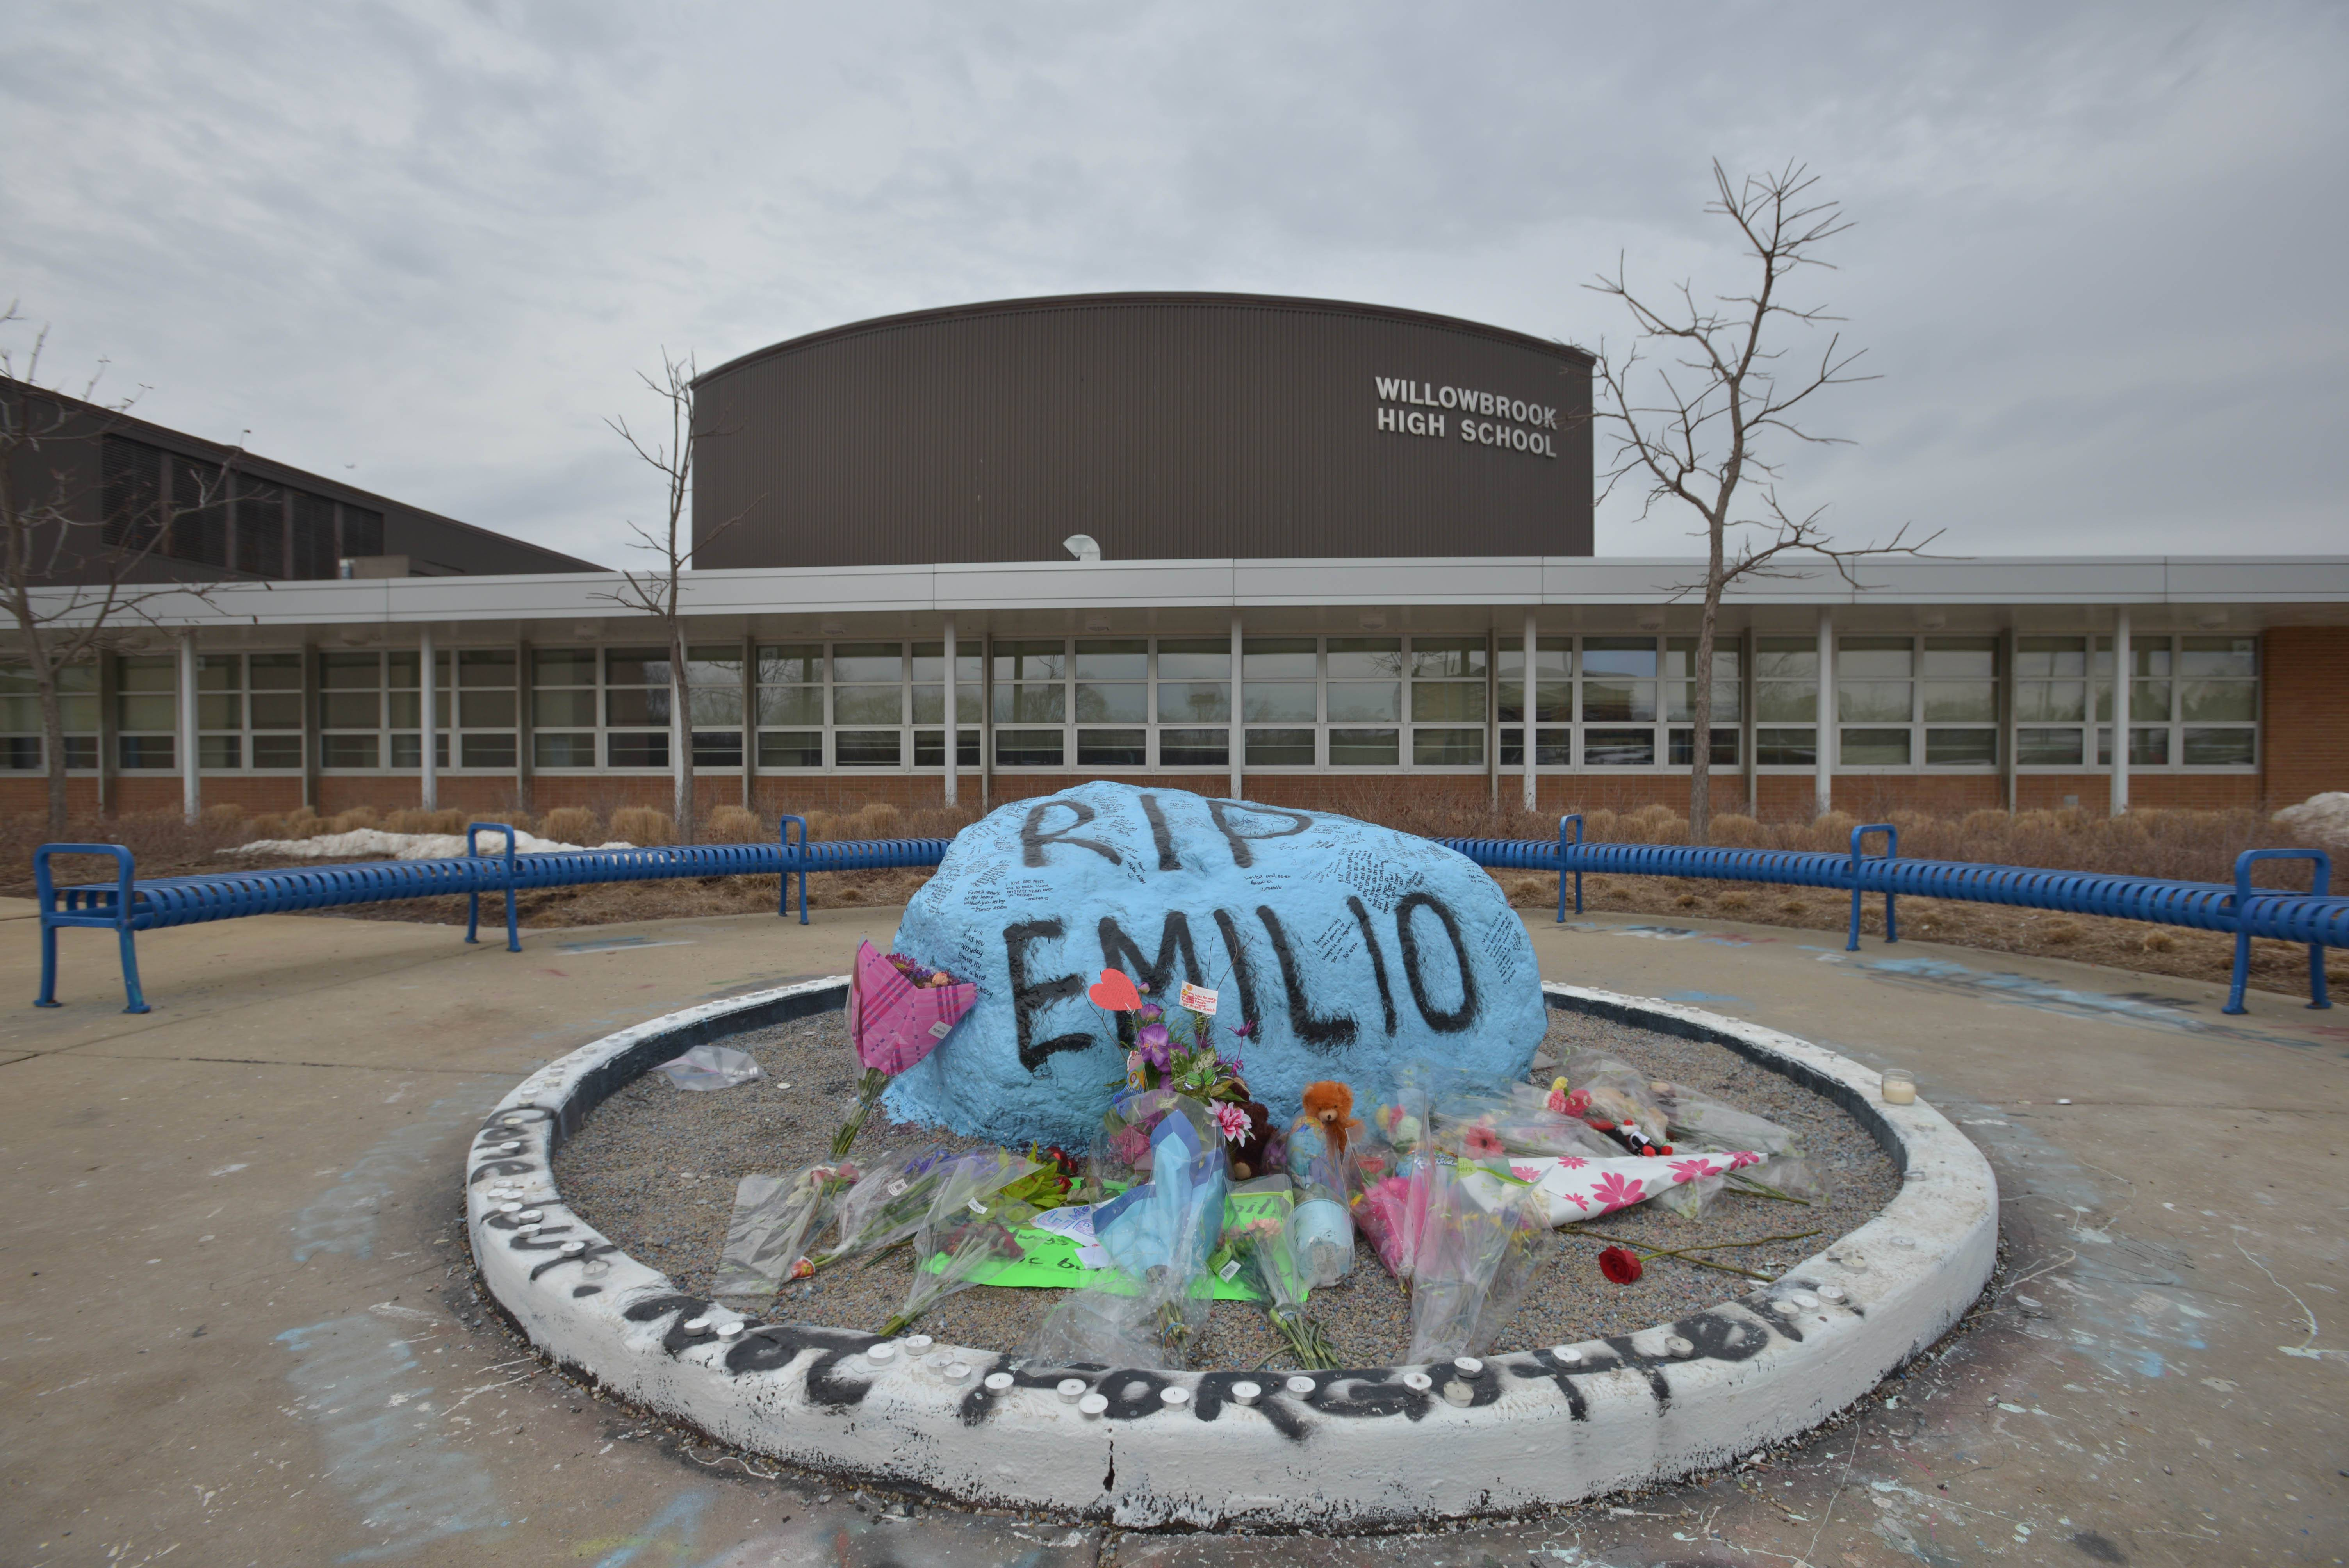 Classmates of Emilio Perez decorated a rock outside Willowbrook High School and held a memorial service Monday in honor of the 17-year-old. Perez was struck and killed Saturday in a hit-and-run on I-88, near Joslin, Ill.